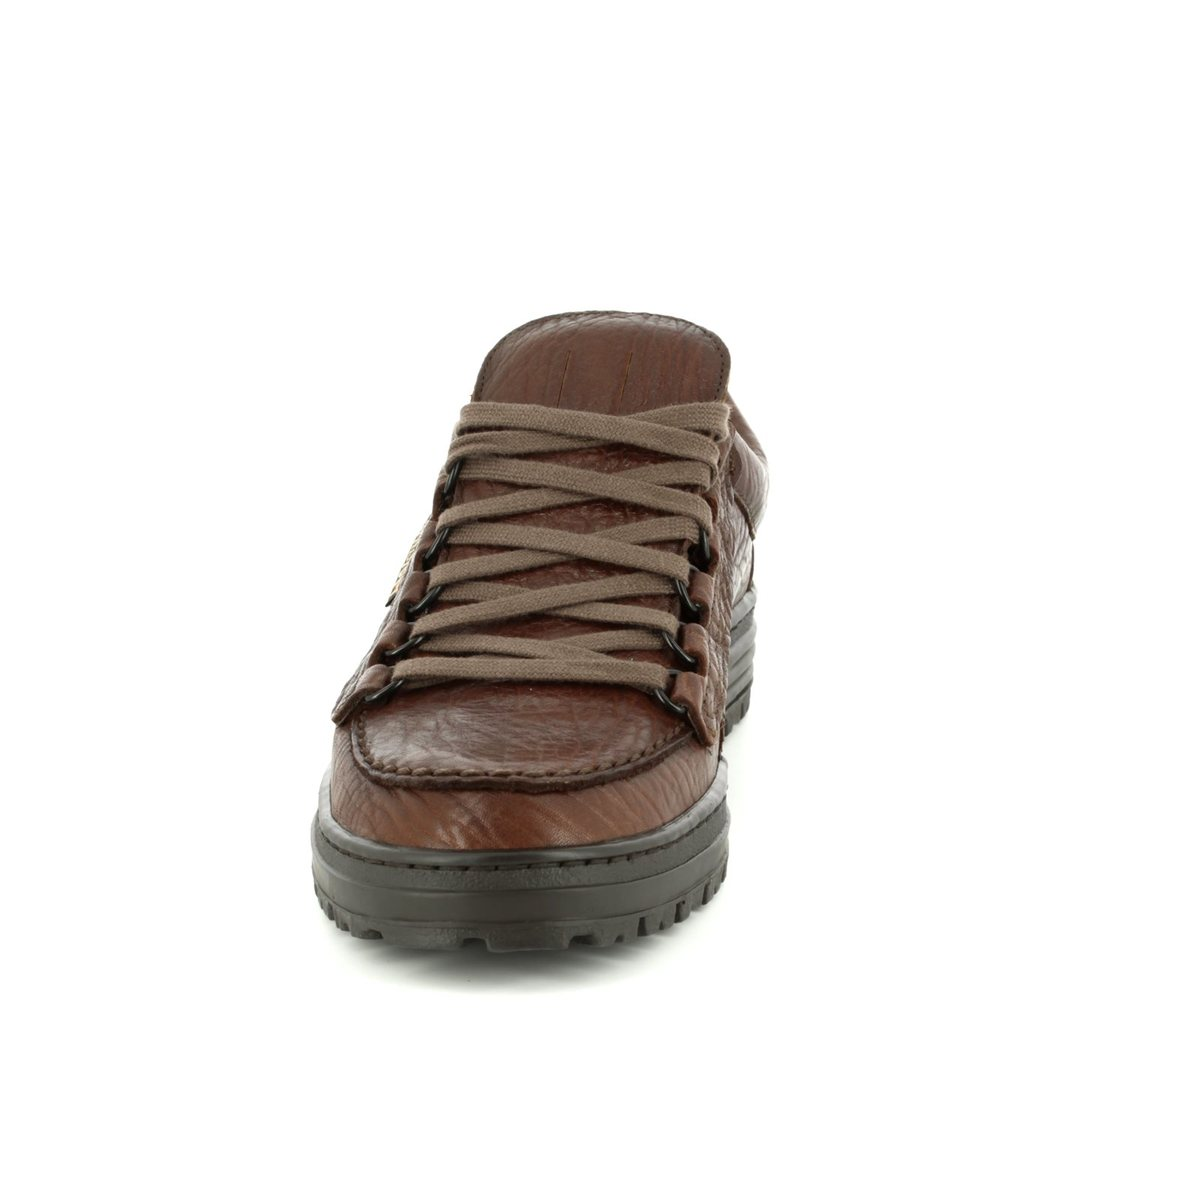 15c5f240f73dc9 Mephisto Casual Shoes - Brown - C840D05/742 CRUISER